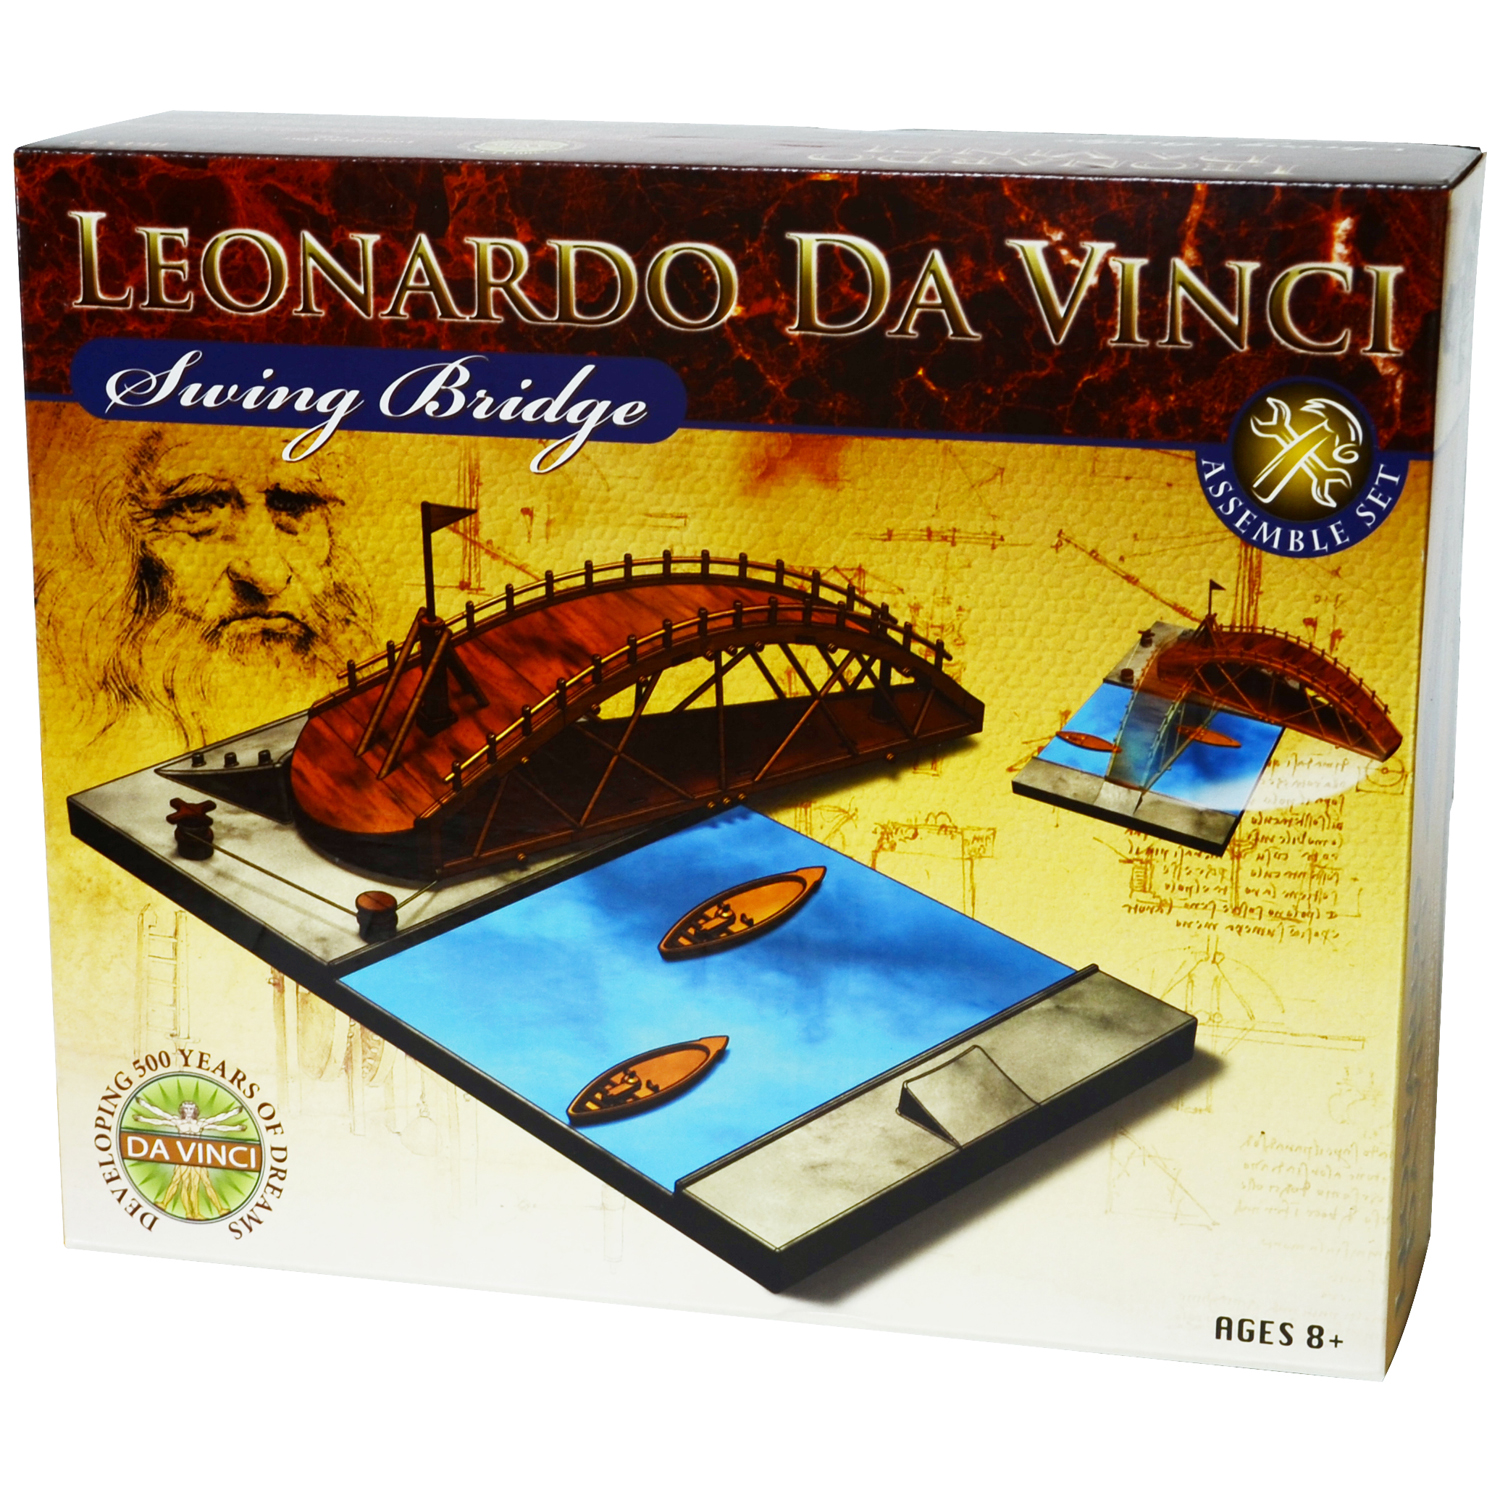 DaVinci Swing Bridge Kit